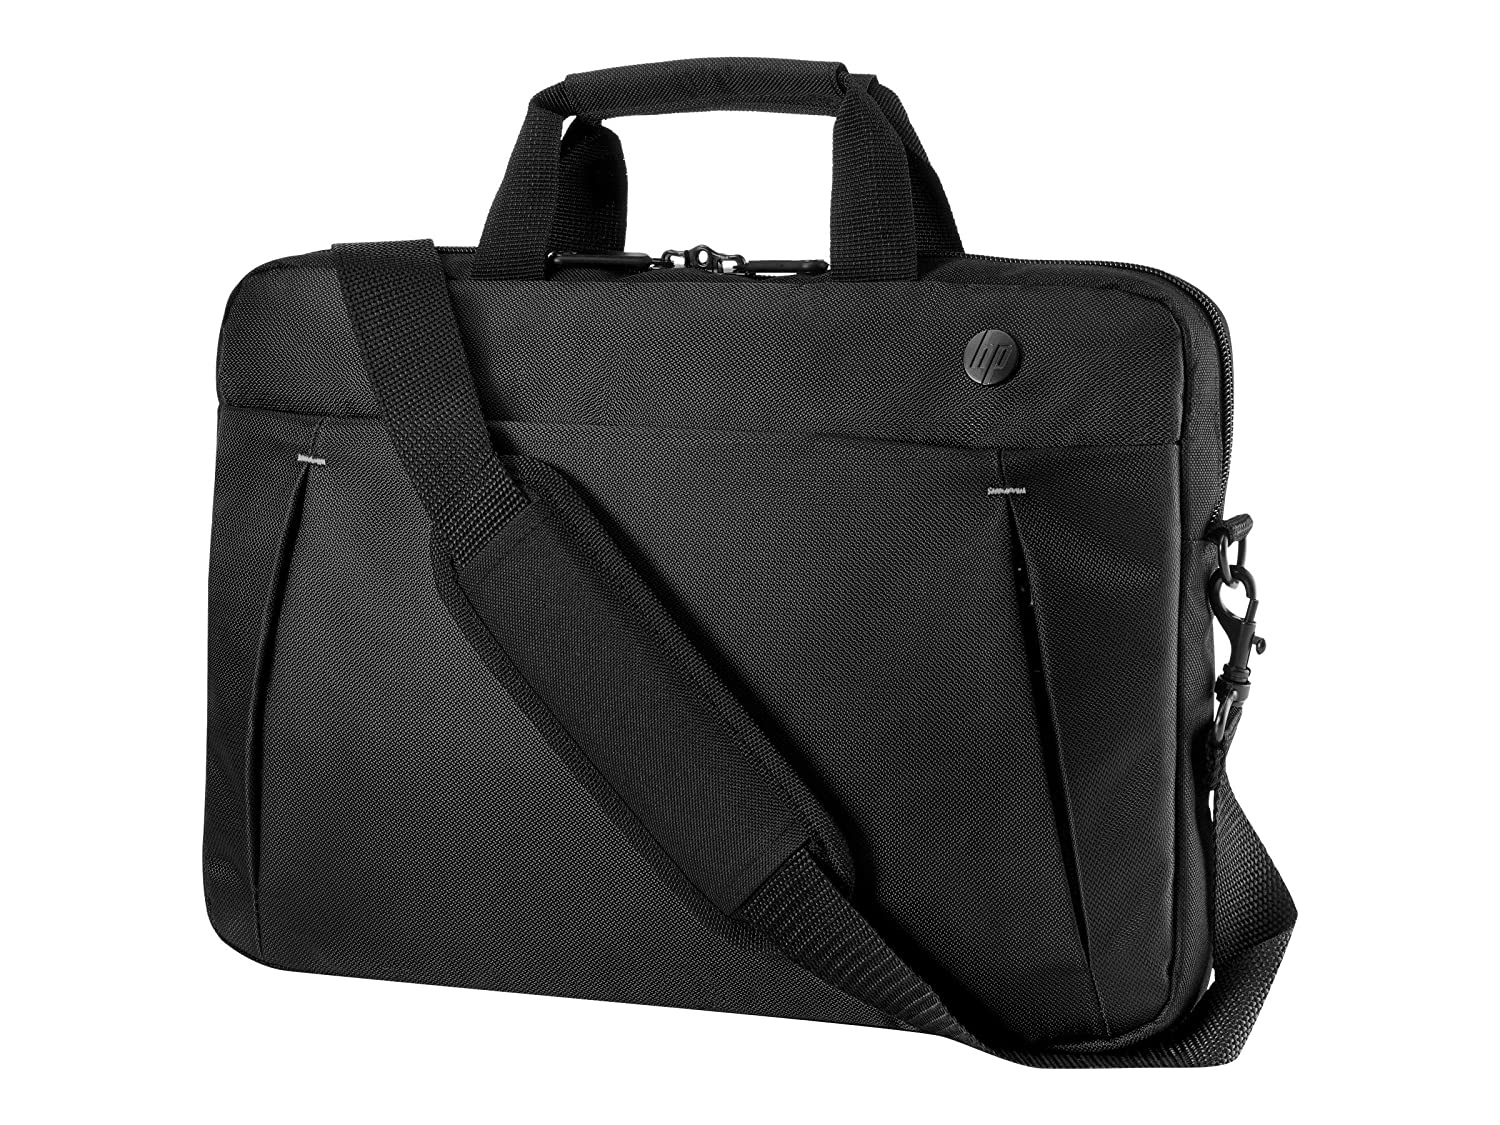 HP Business Slim Top Load Notebook Carrying Case 14.1 Black